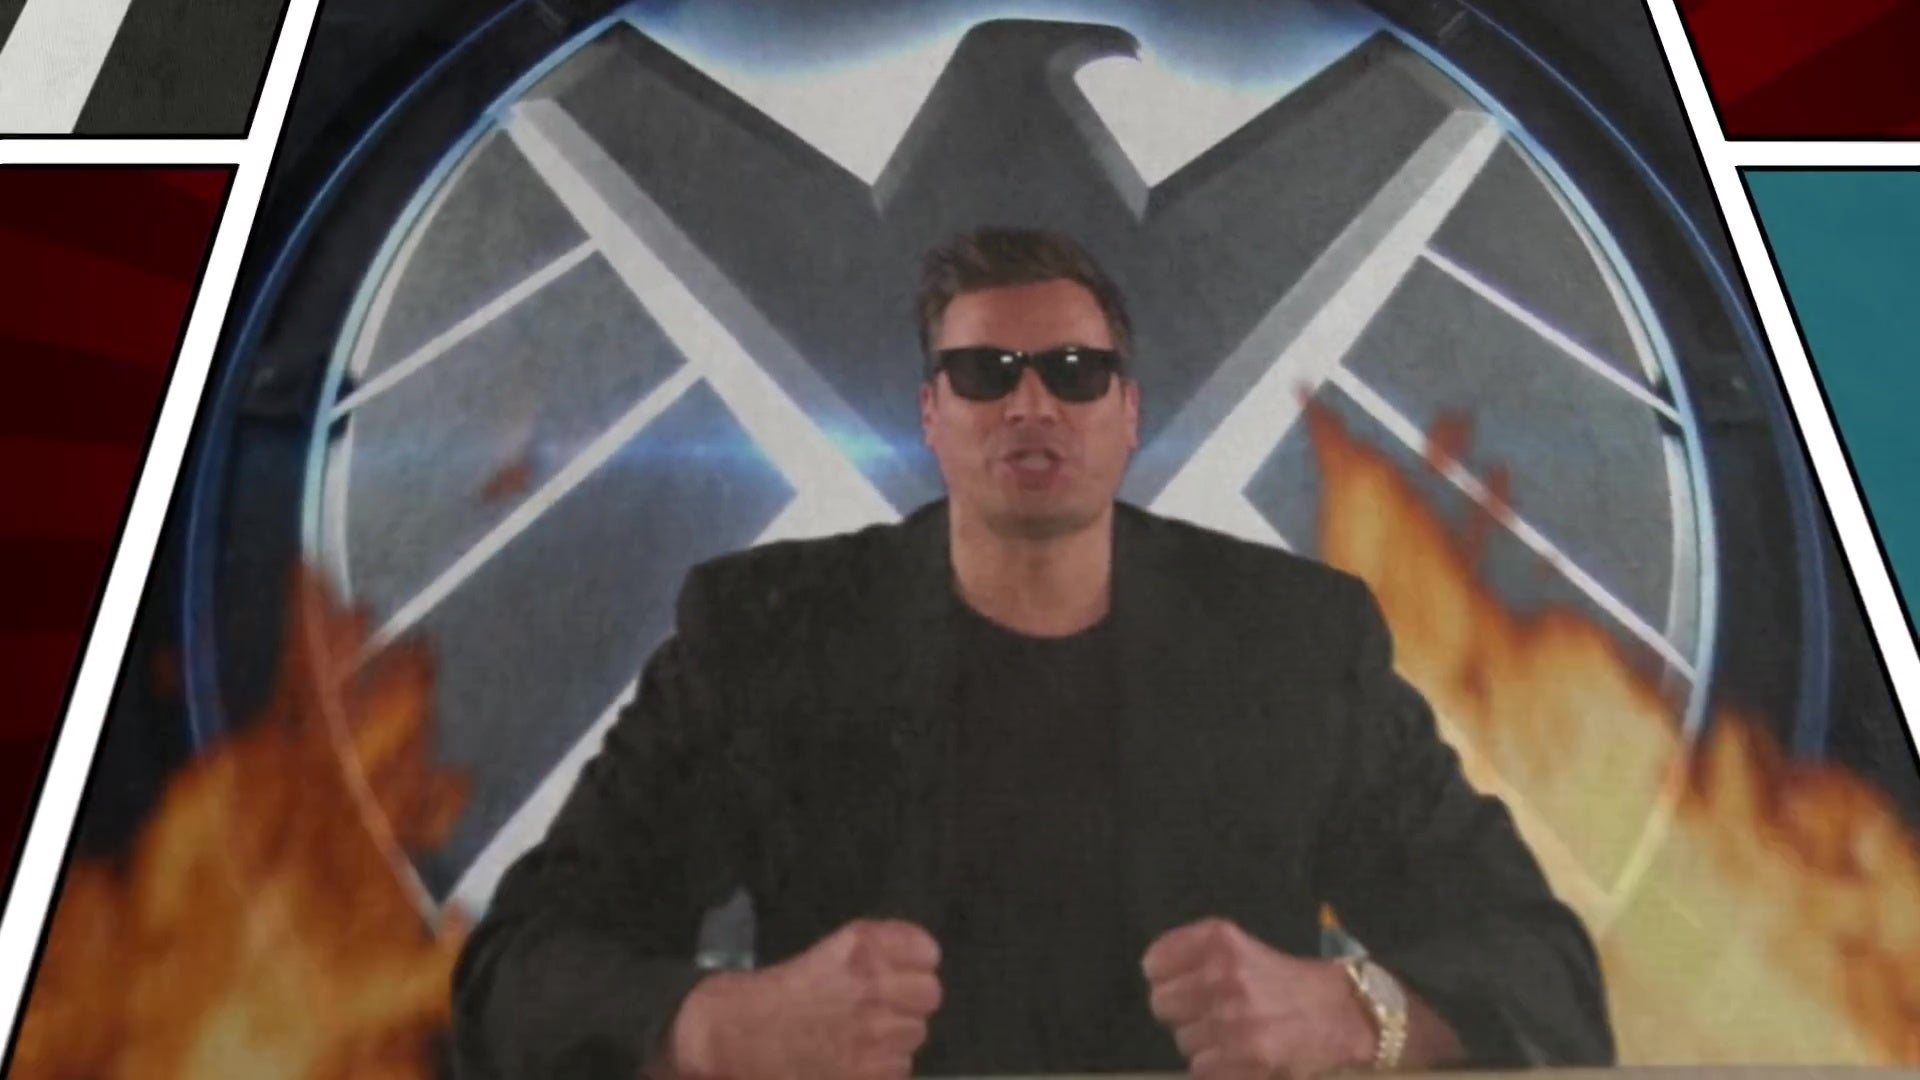 Jimmy Fallon, dressed as Billy Joel, in front of a burning logo from Marvel's S.H.I.E.L.D.